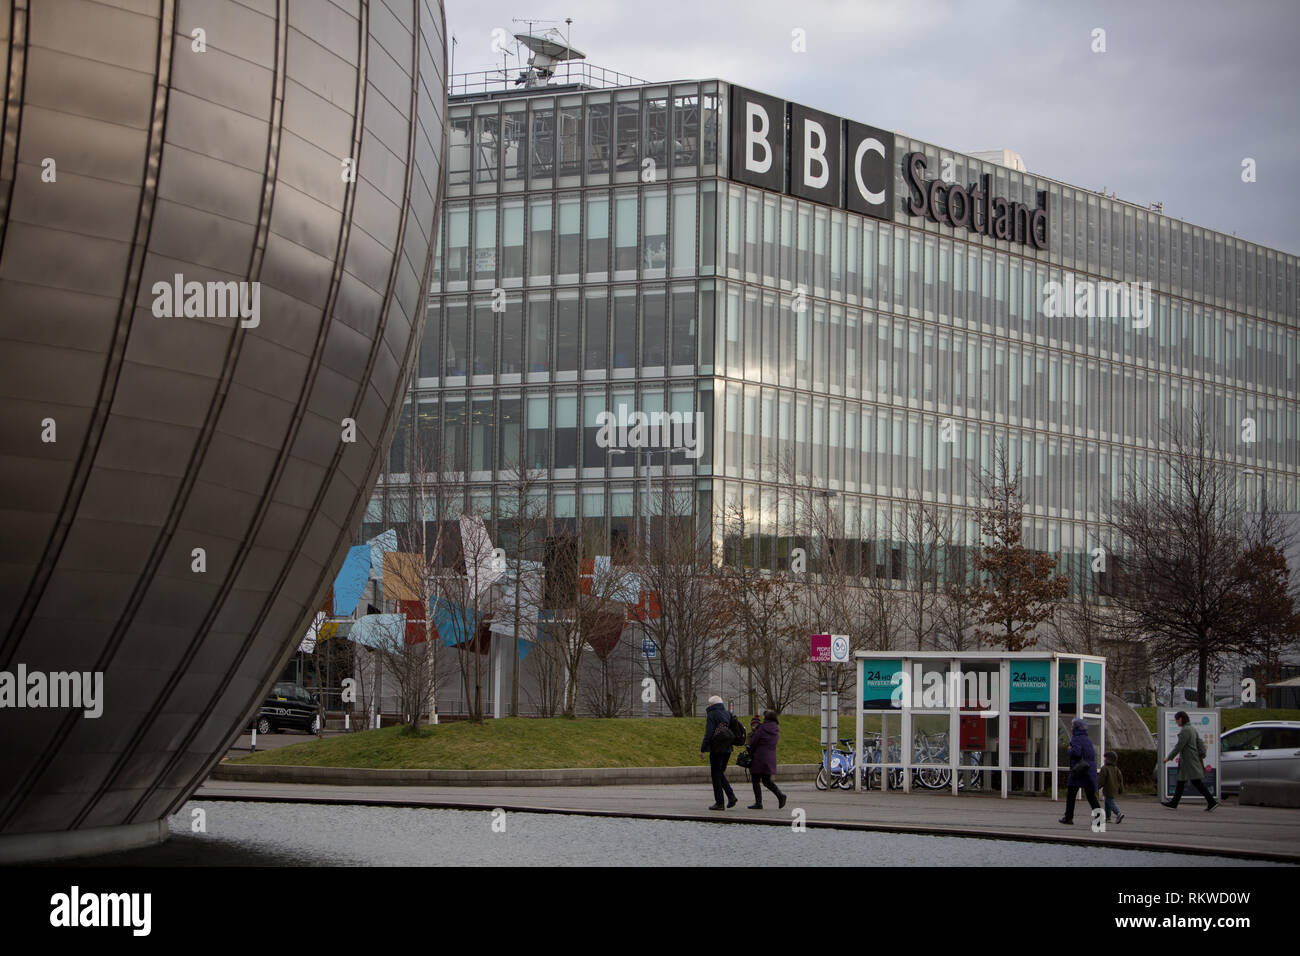 BBC Scotland building at Pacific Quay, Glasgow, Scotland Stock Photo